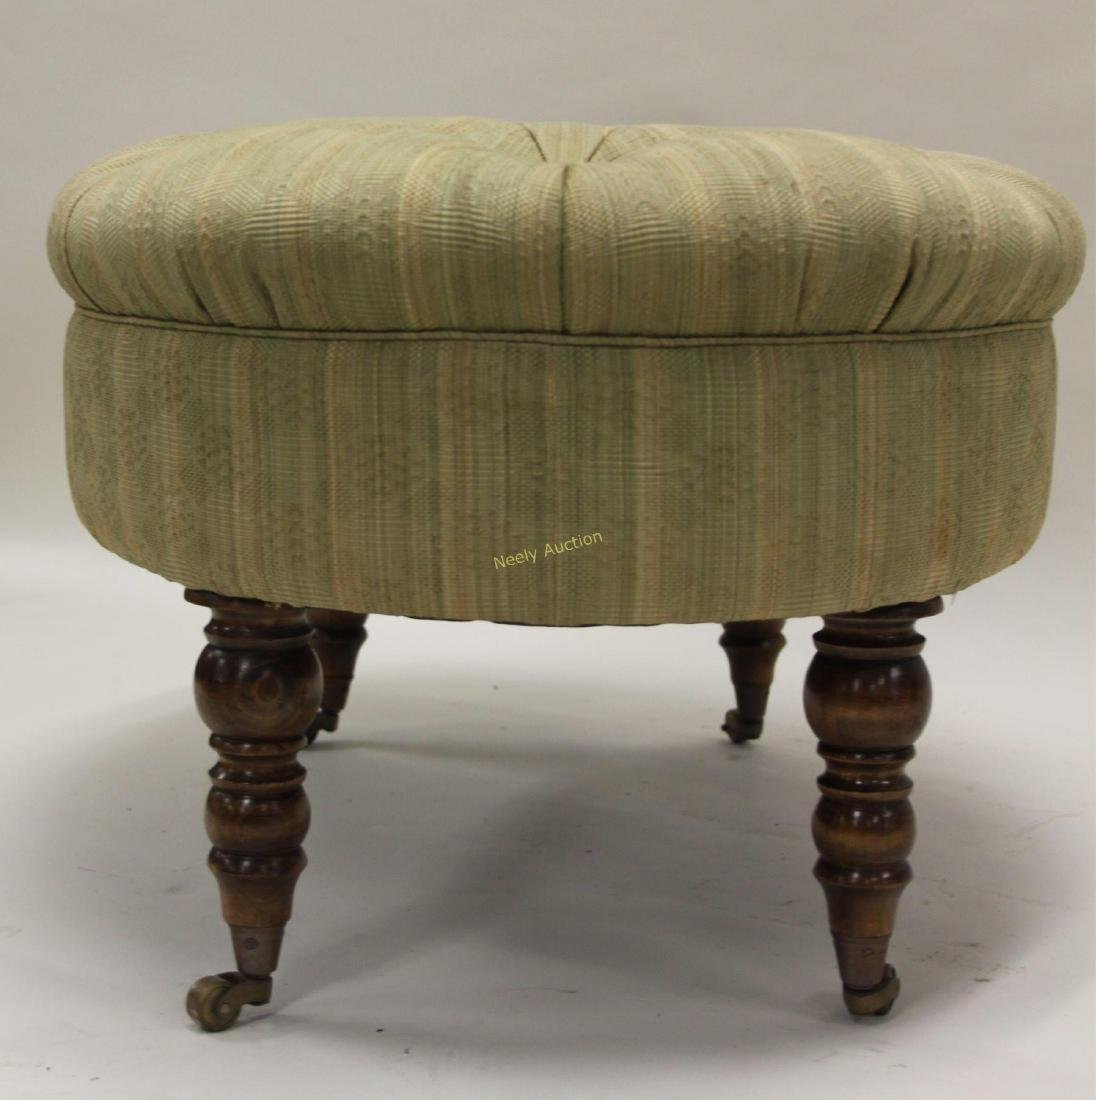 Victorian Tufted Oval Ottoman Legs w Casters - 3